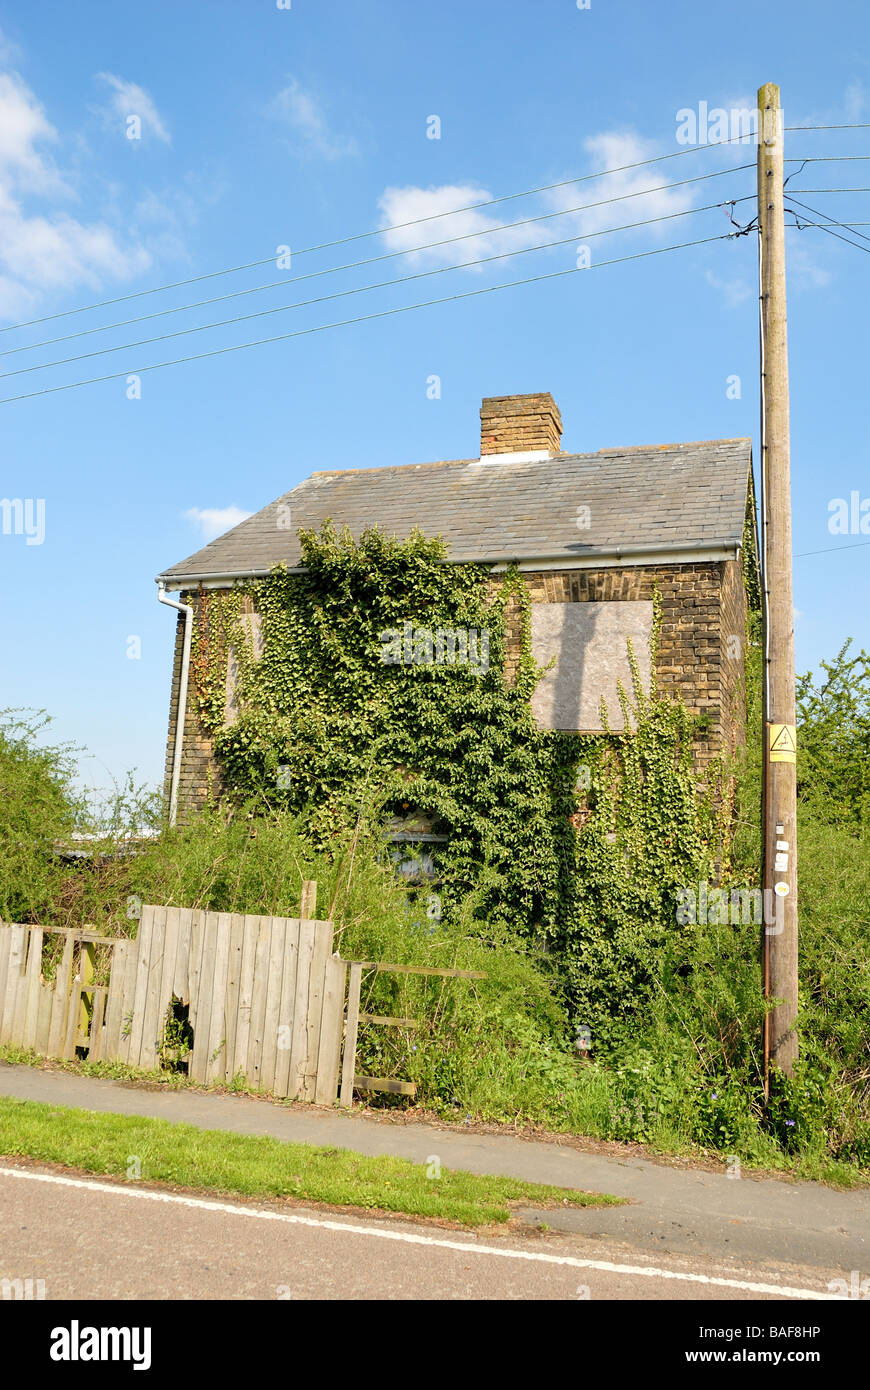 Old House Boarded up - Stock Image